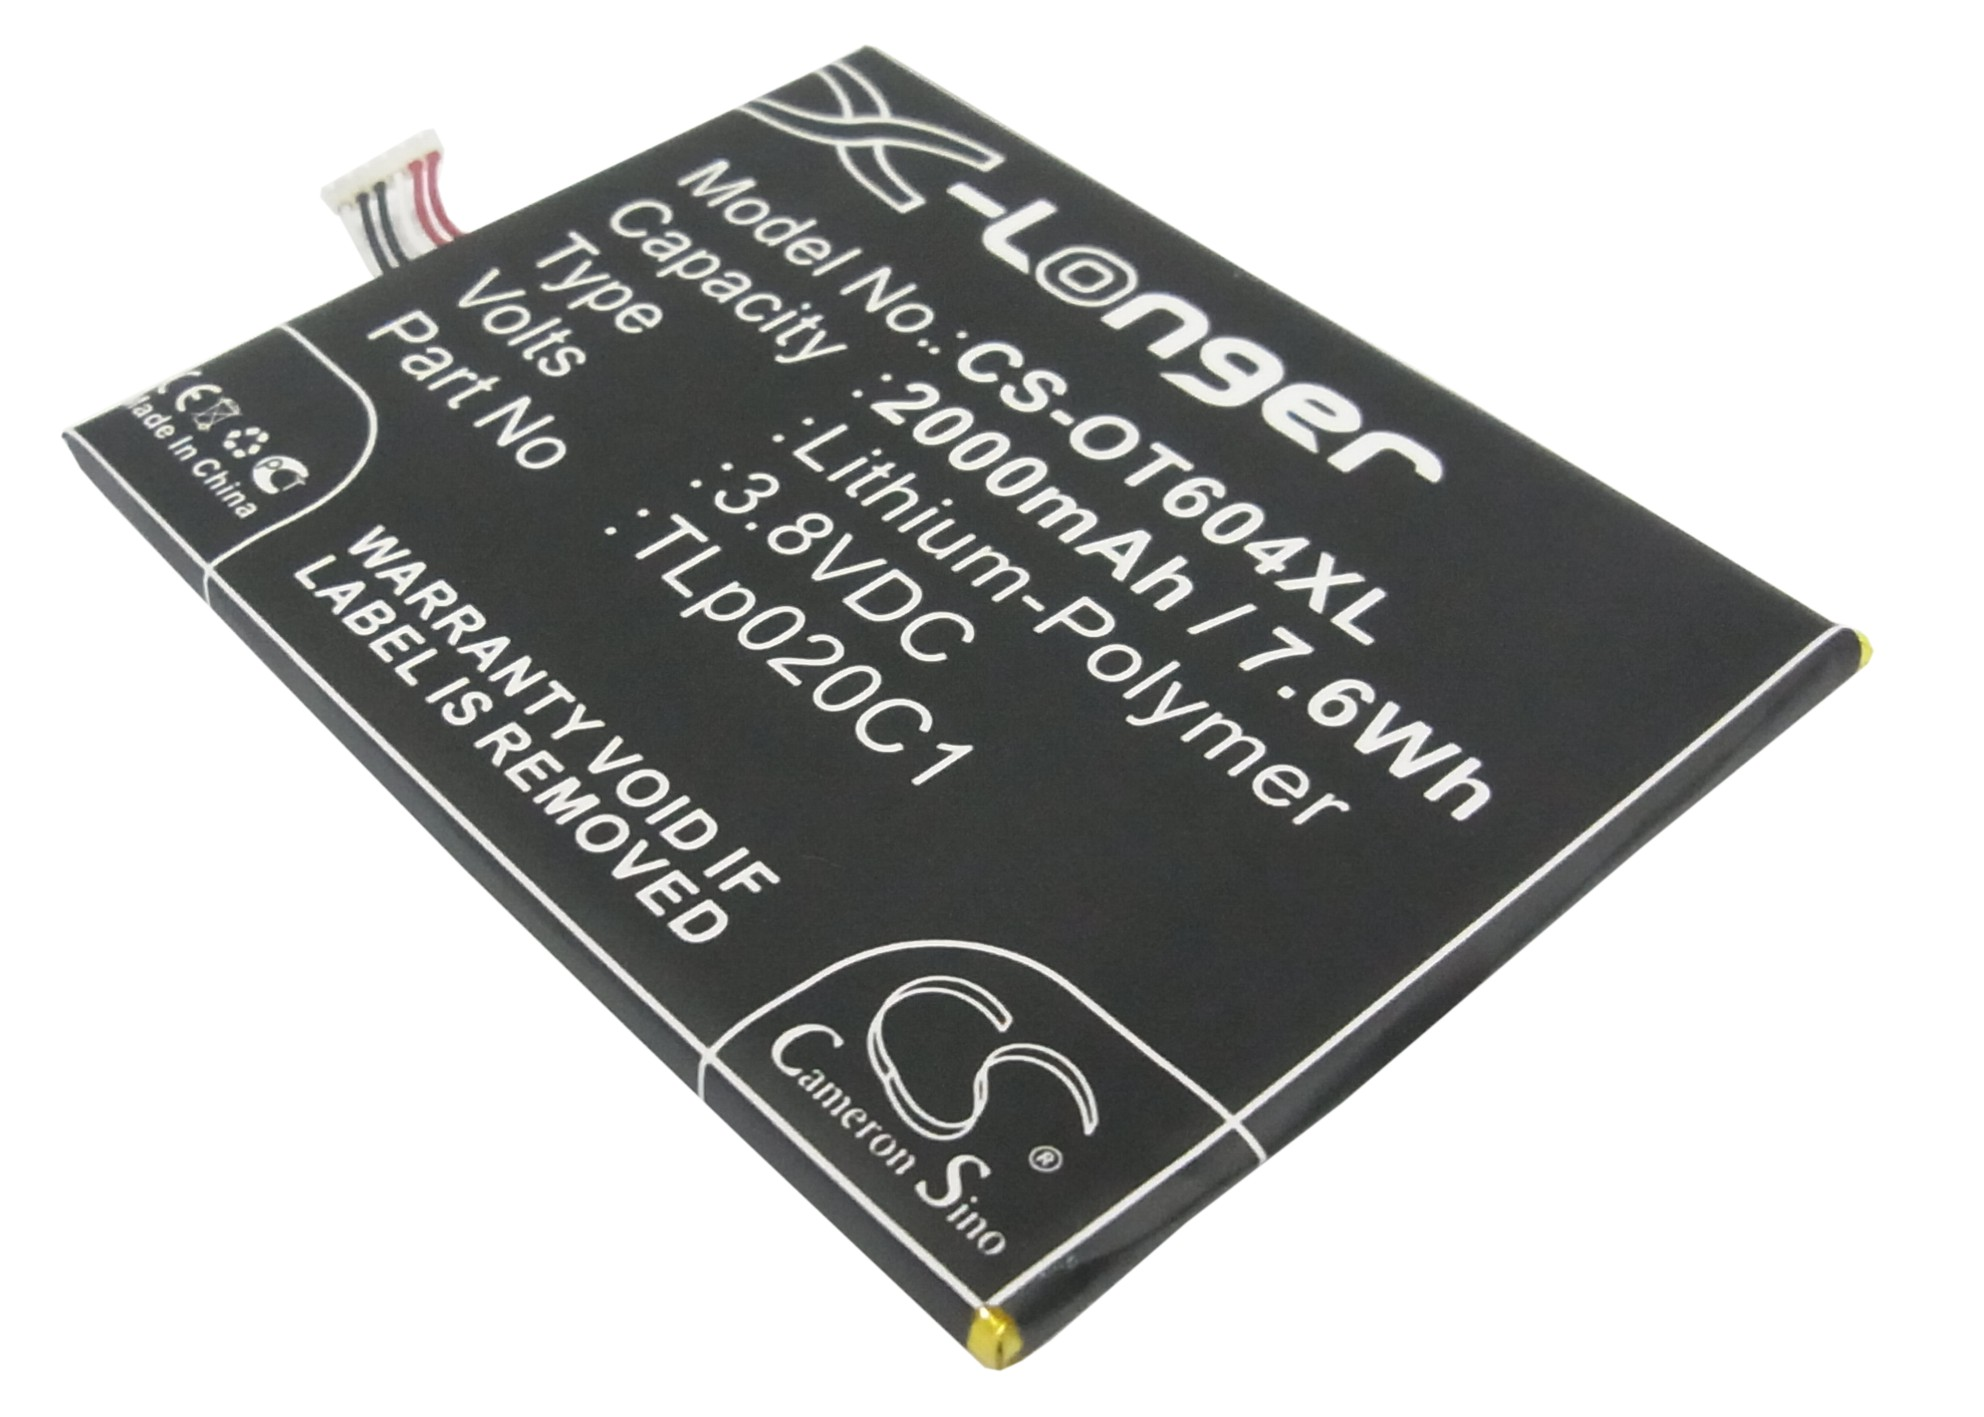 UPGRADE Cameron Sino Battery For <font><b>Alcatel</b></font> CAC2000012C2 OT-6034M,OT-6034R,OT-6034Y,OT-6035,OT-<font><b>6035R</b></font> 2000mAh / 7.60Wh image